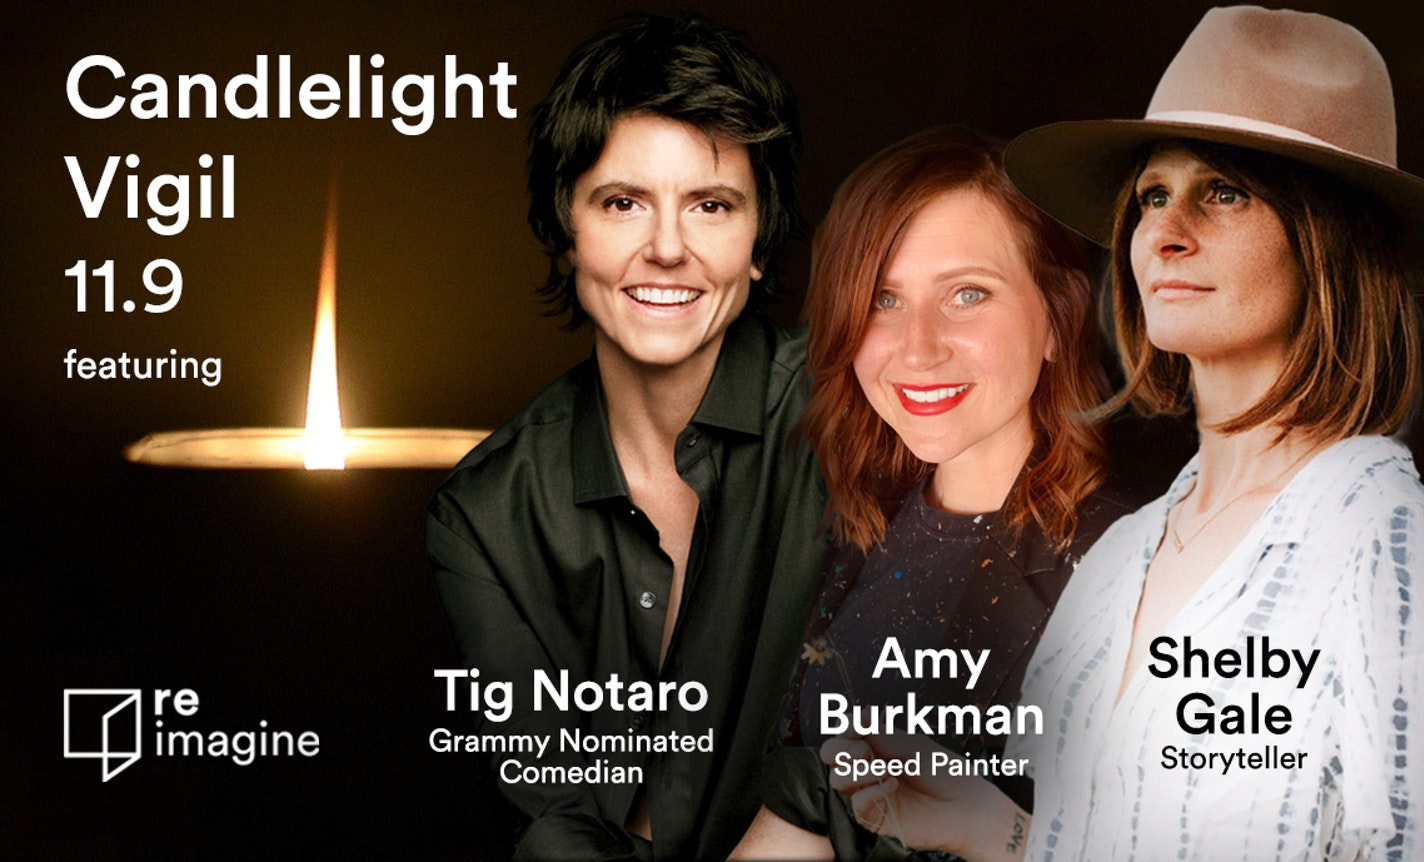 Virtual Candlelight Vigil with Tig Notaro, Amy Burkman, & Shelby Gale